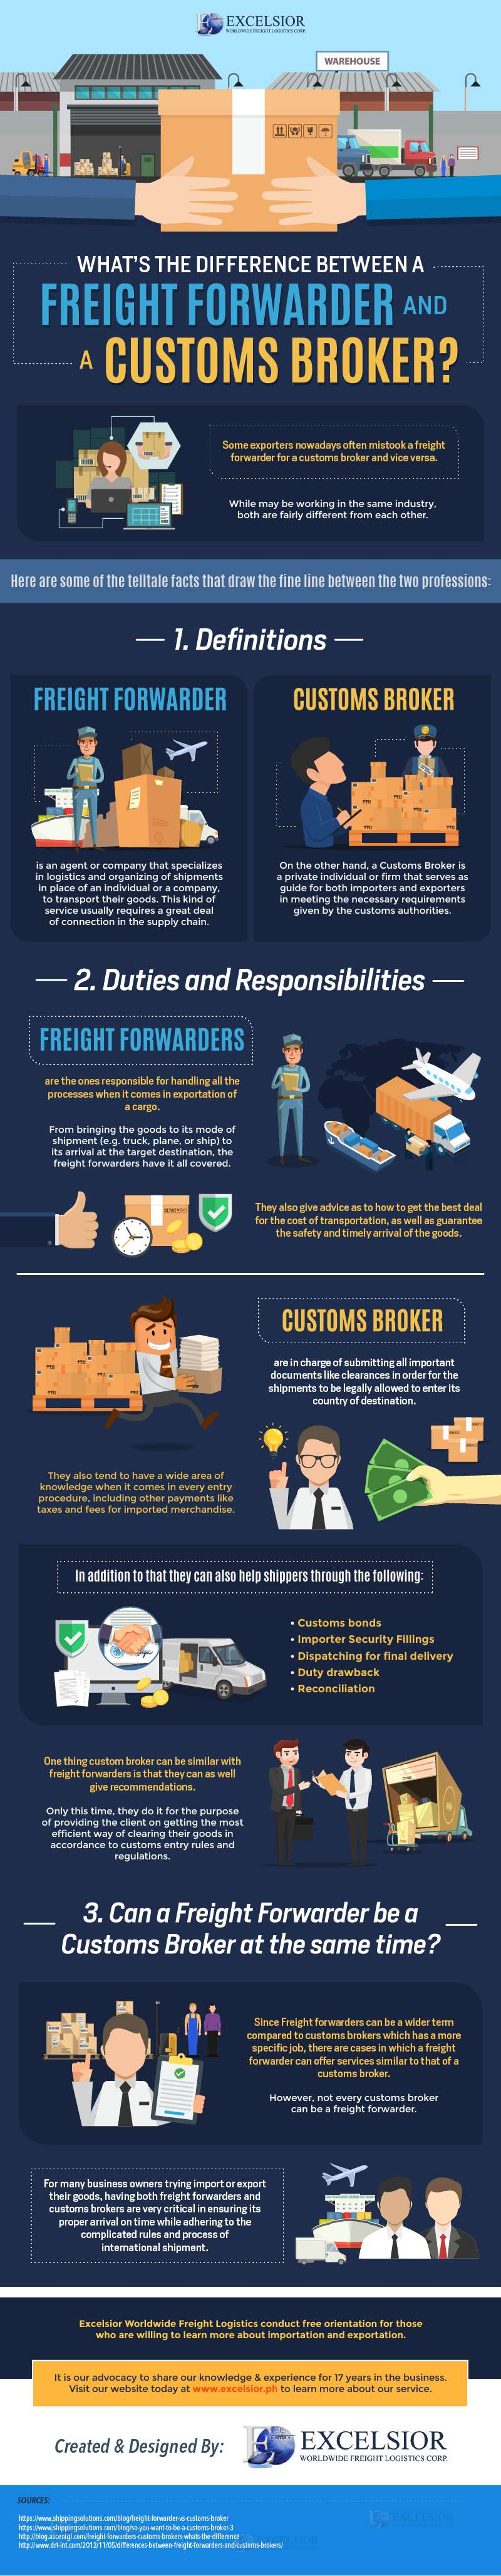 What's the Difference Between a Freight Forwarder and a Customs Broker